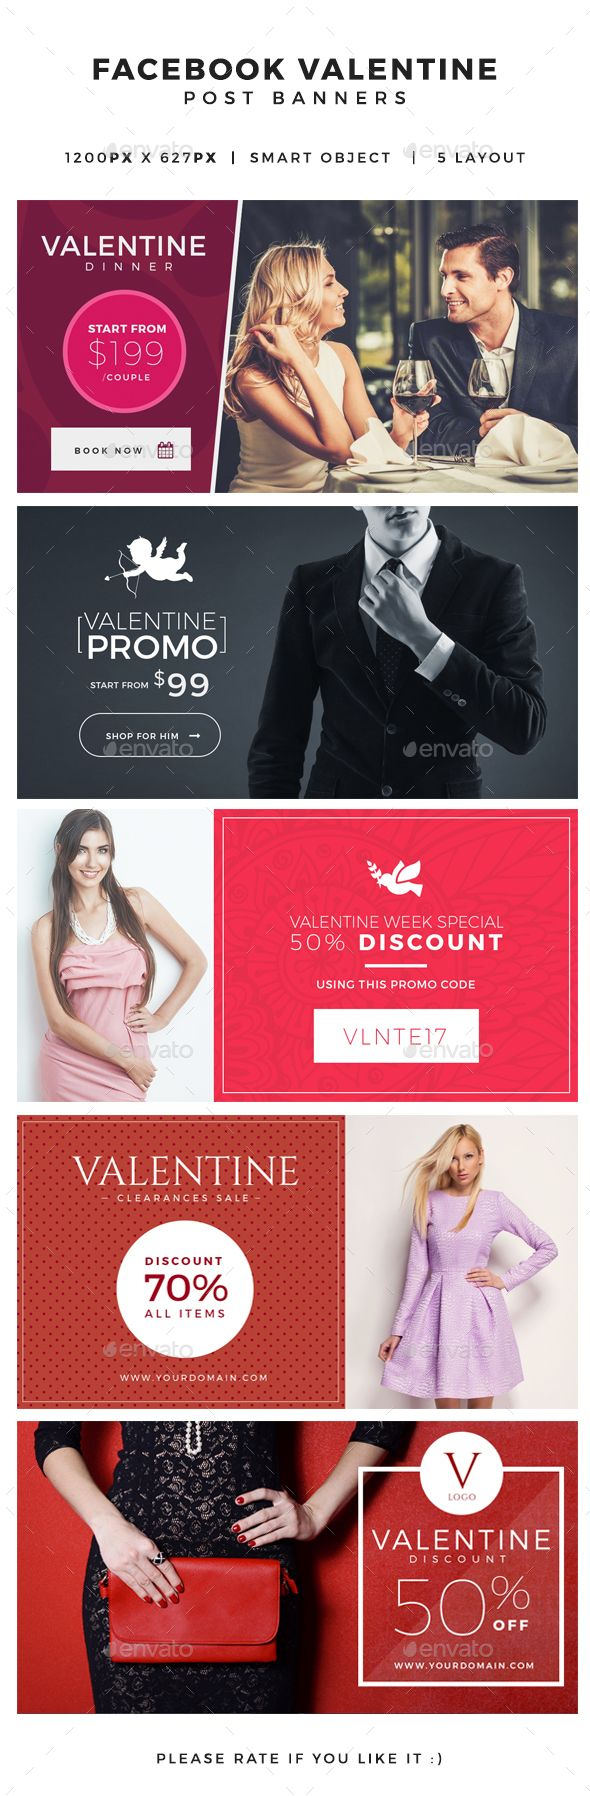 Valentine Facebook Post Banners,ads, banner, boutique, creative, discount, ecommerce, facebook, facebook post, festival, gift, love, modern, pink, post, promo, promotion, romance, sale, sale season, shop, valentine